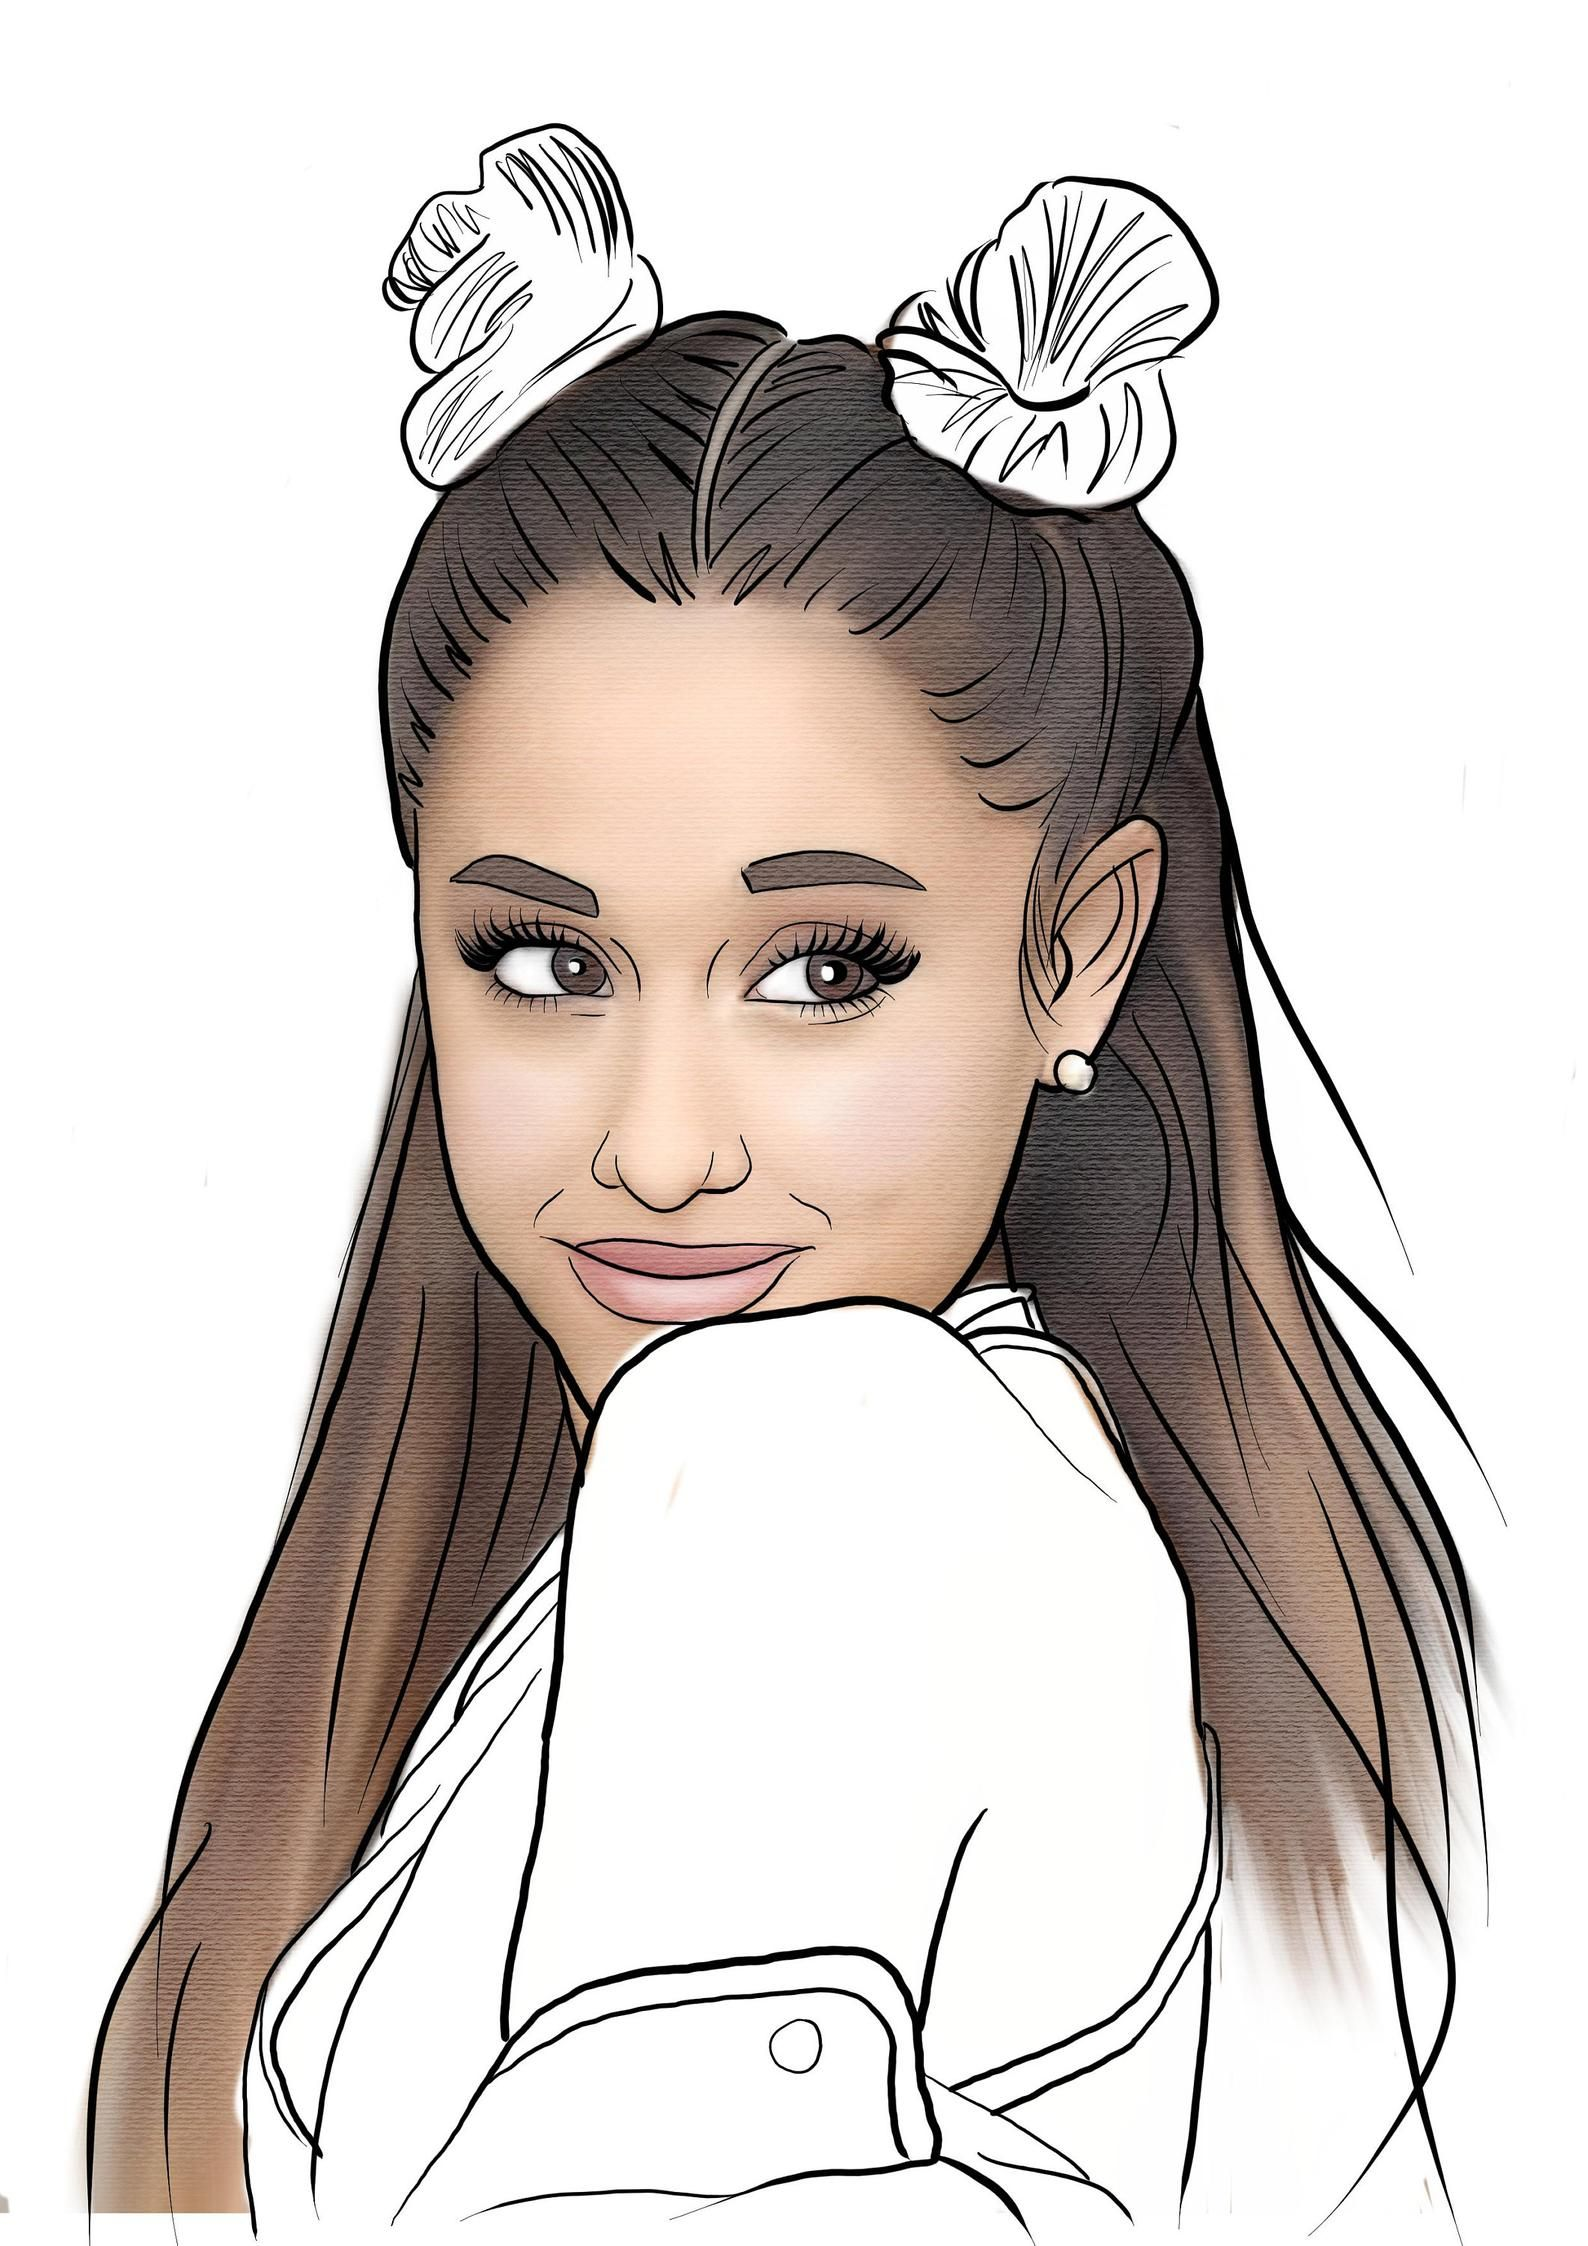 Ariana Grande adult colouring page download Adult